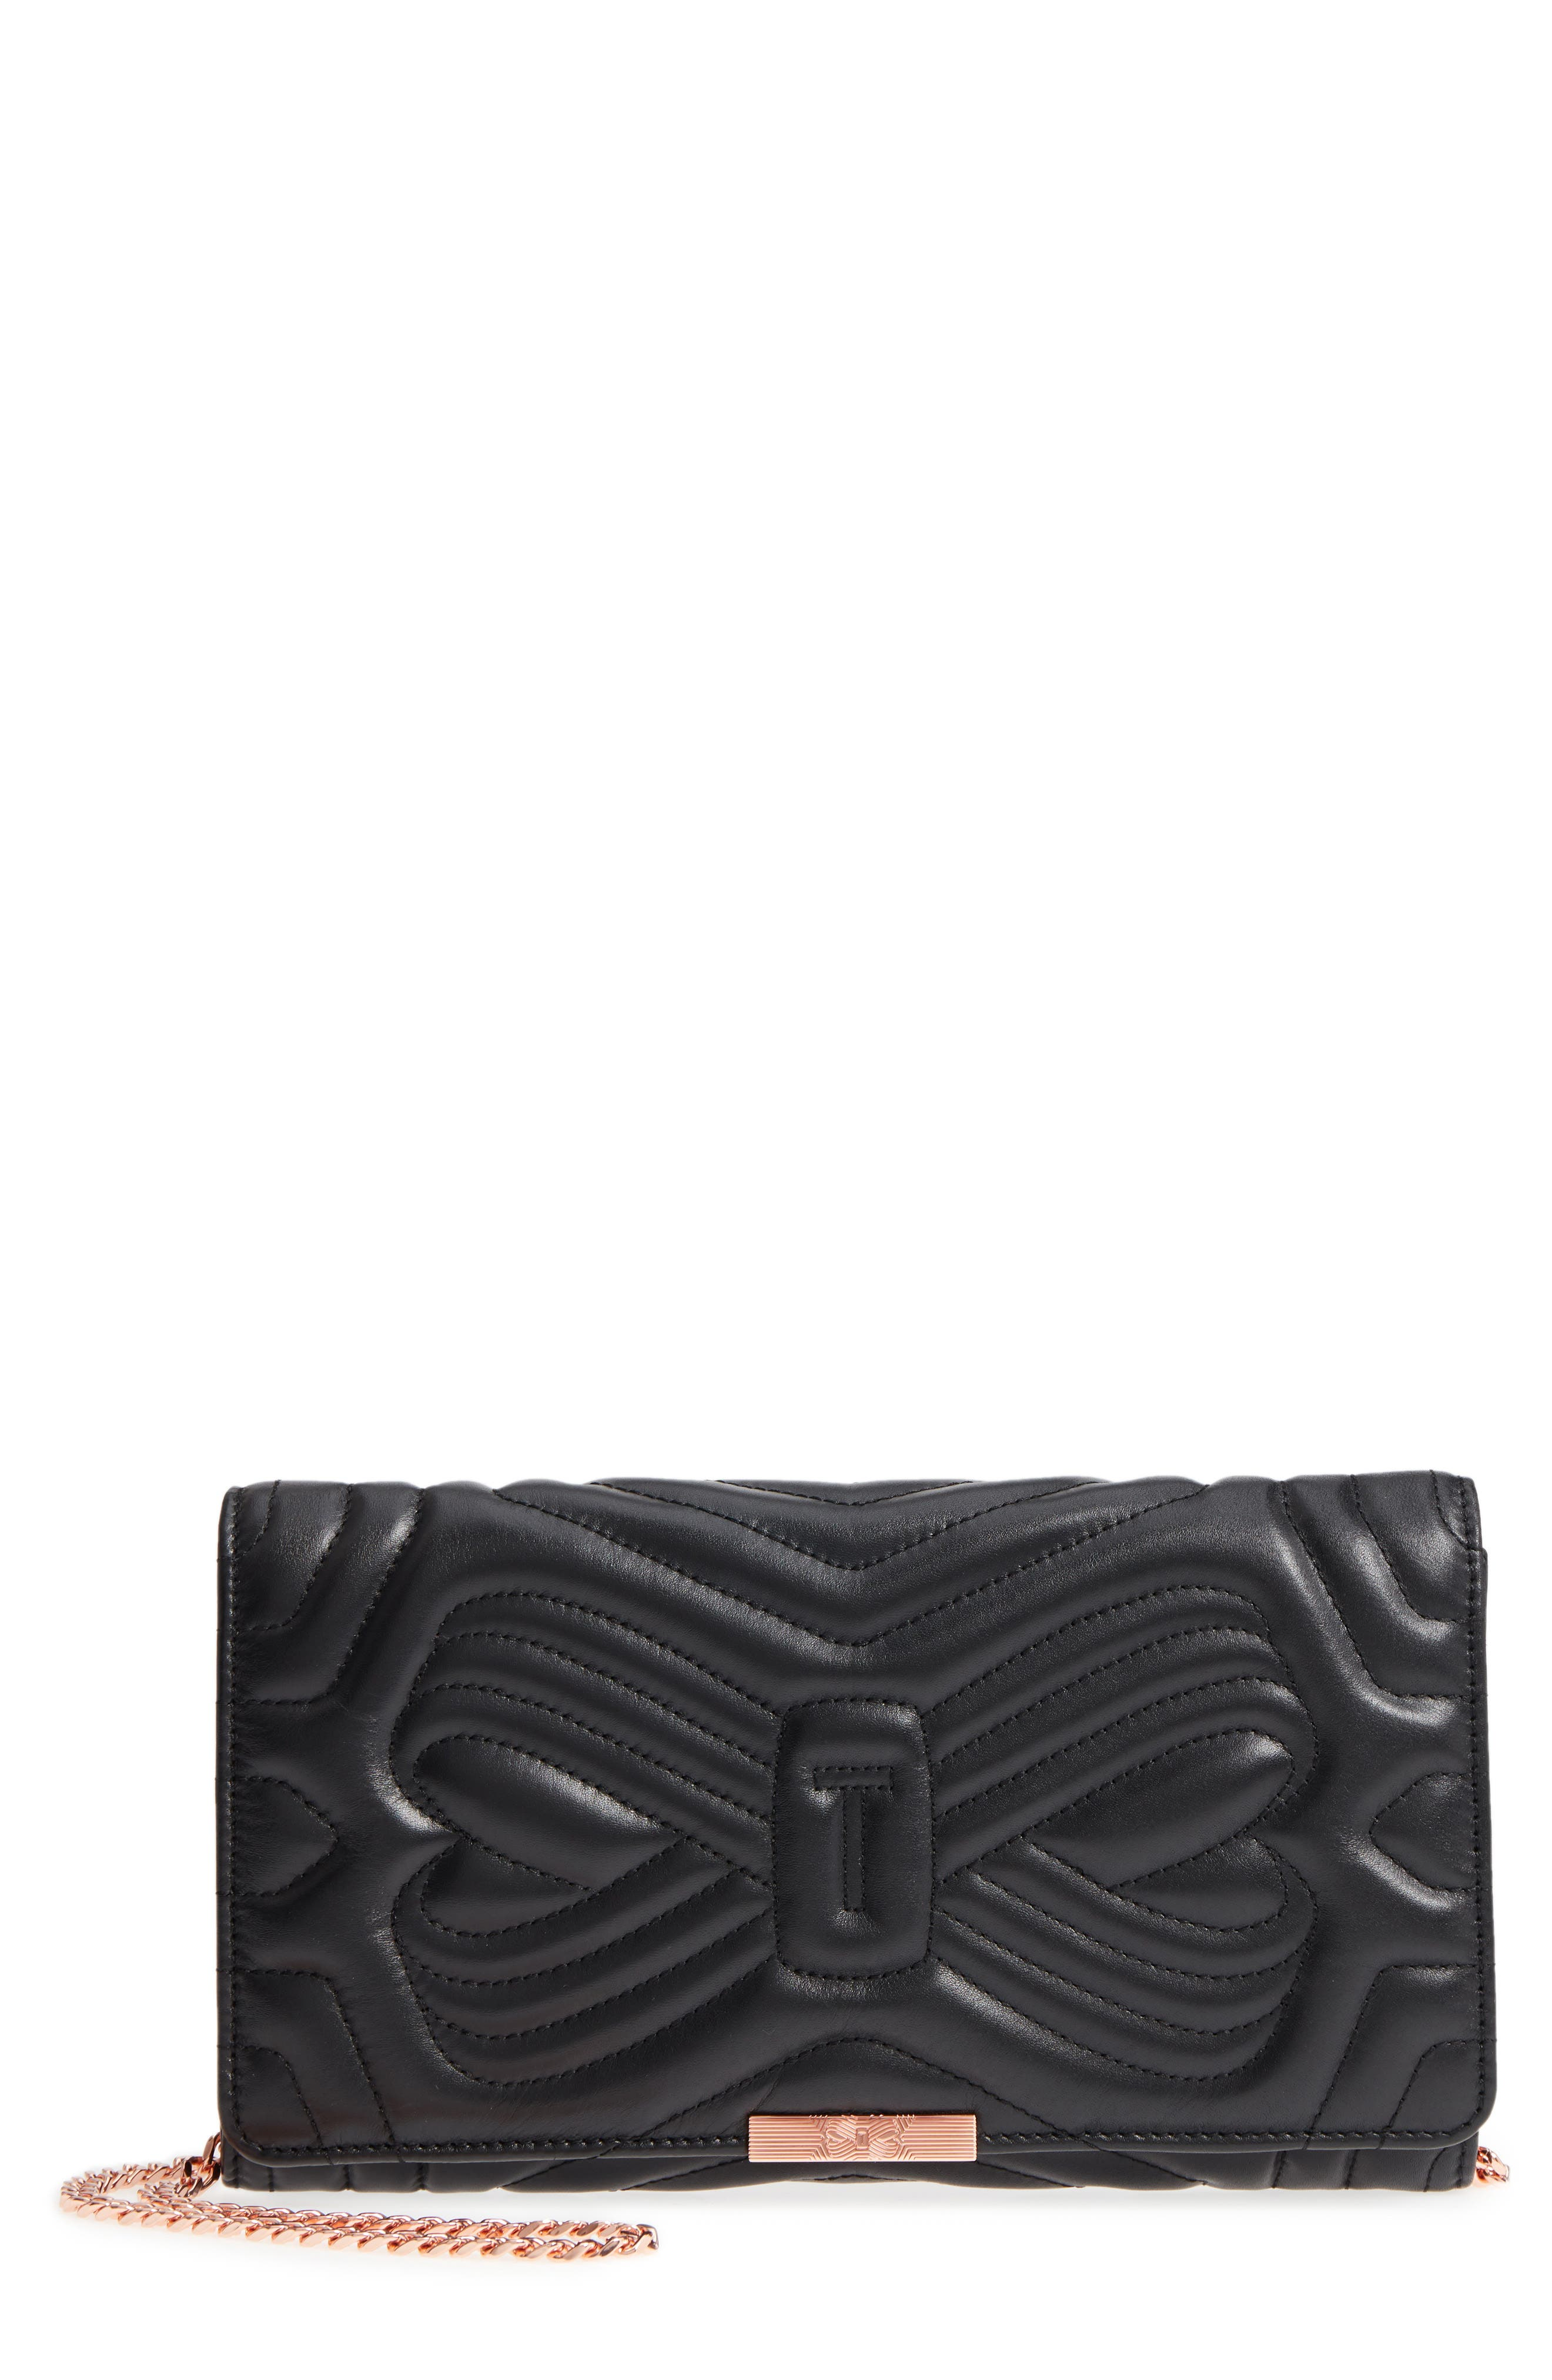 TED BAKER LONDON Ciliaa Quilted Bow Leather Clutch, Main, color, 001